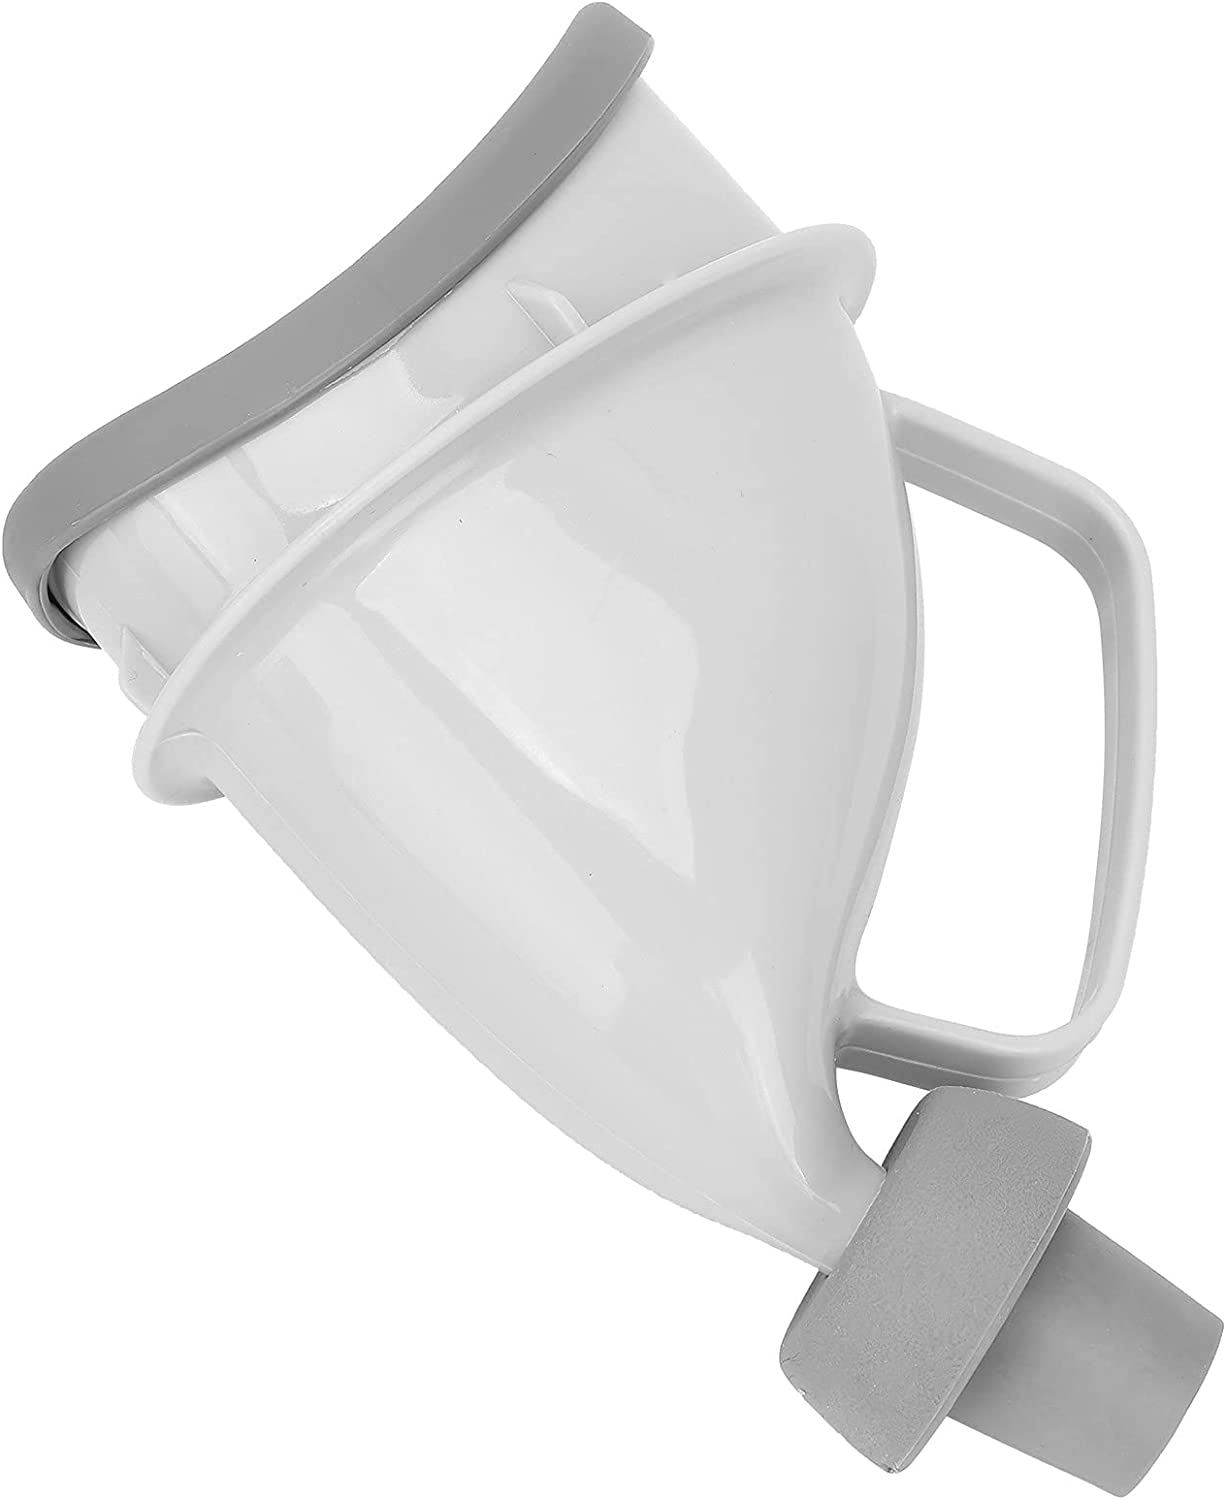 Pee Funnel Max 53% OFF Practical Discount mail order Outdoor for Travel Urinal Car